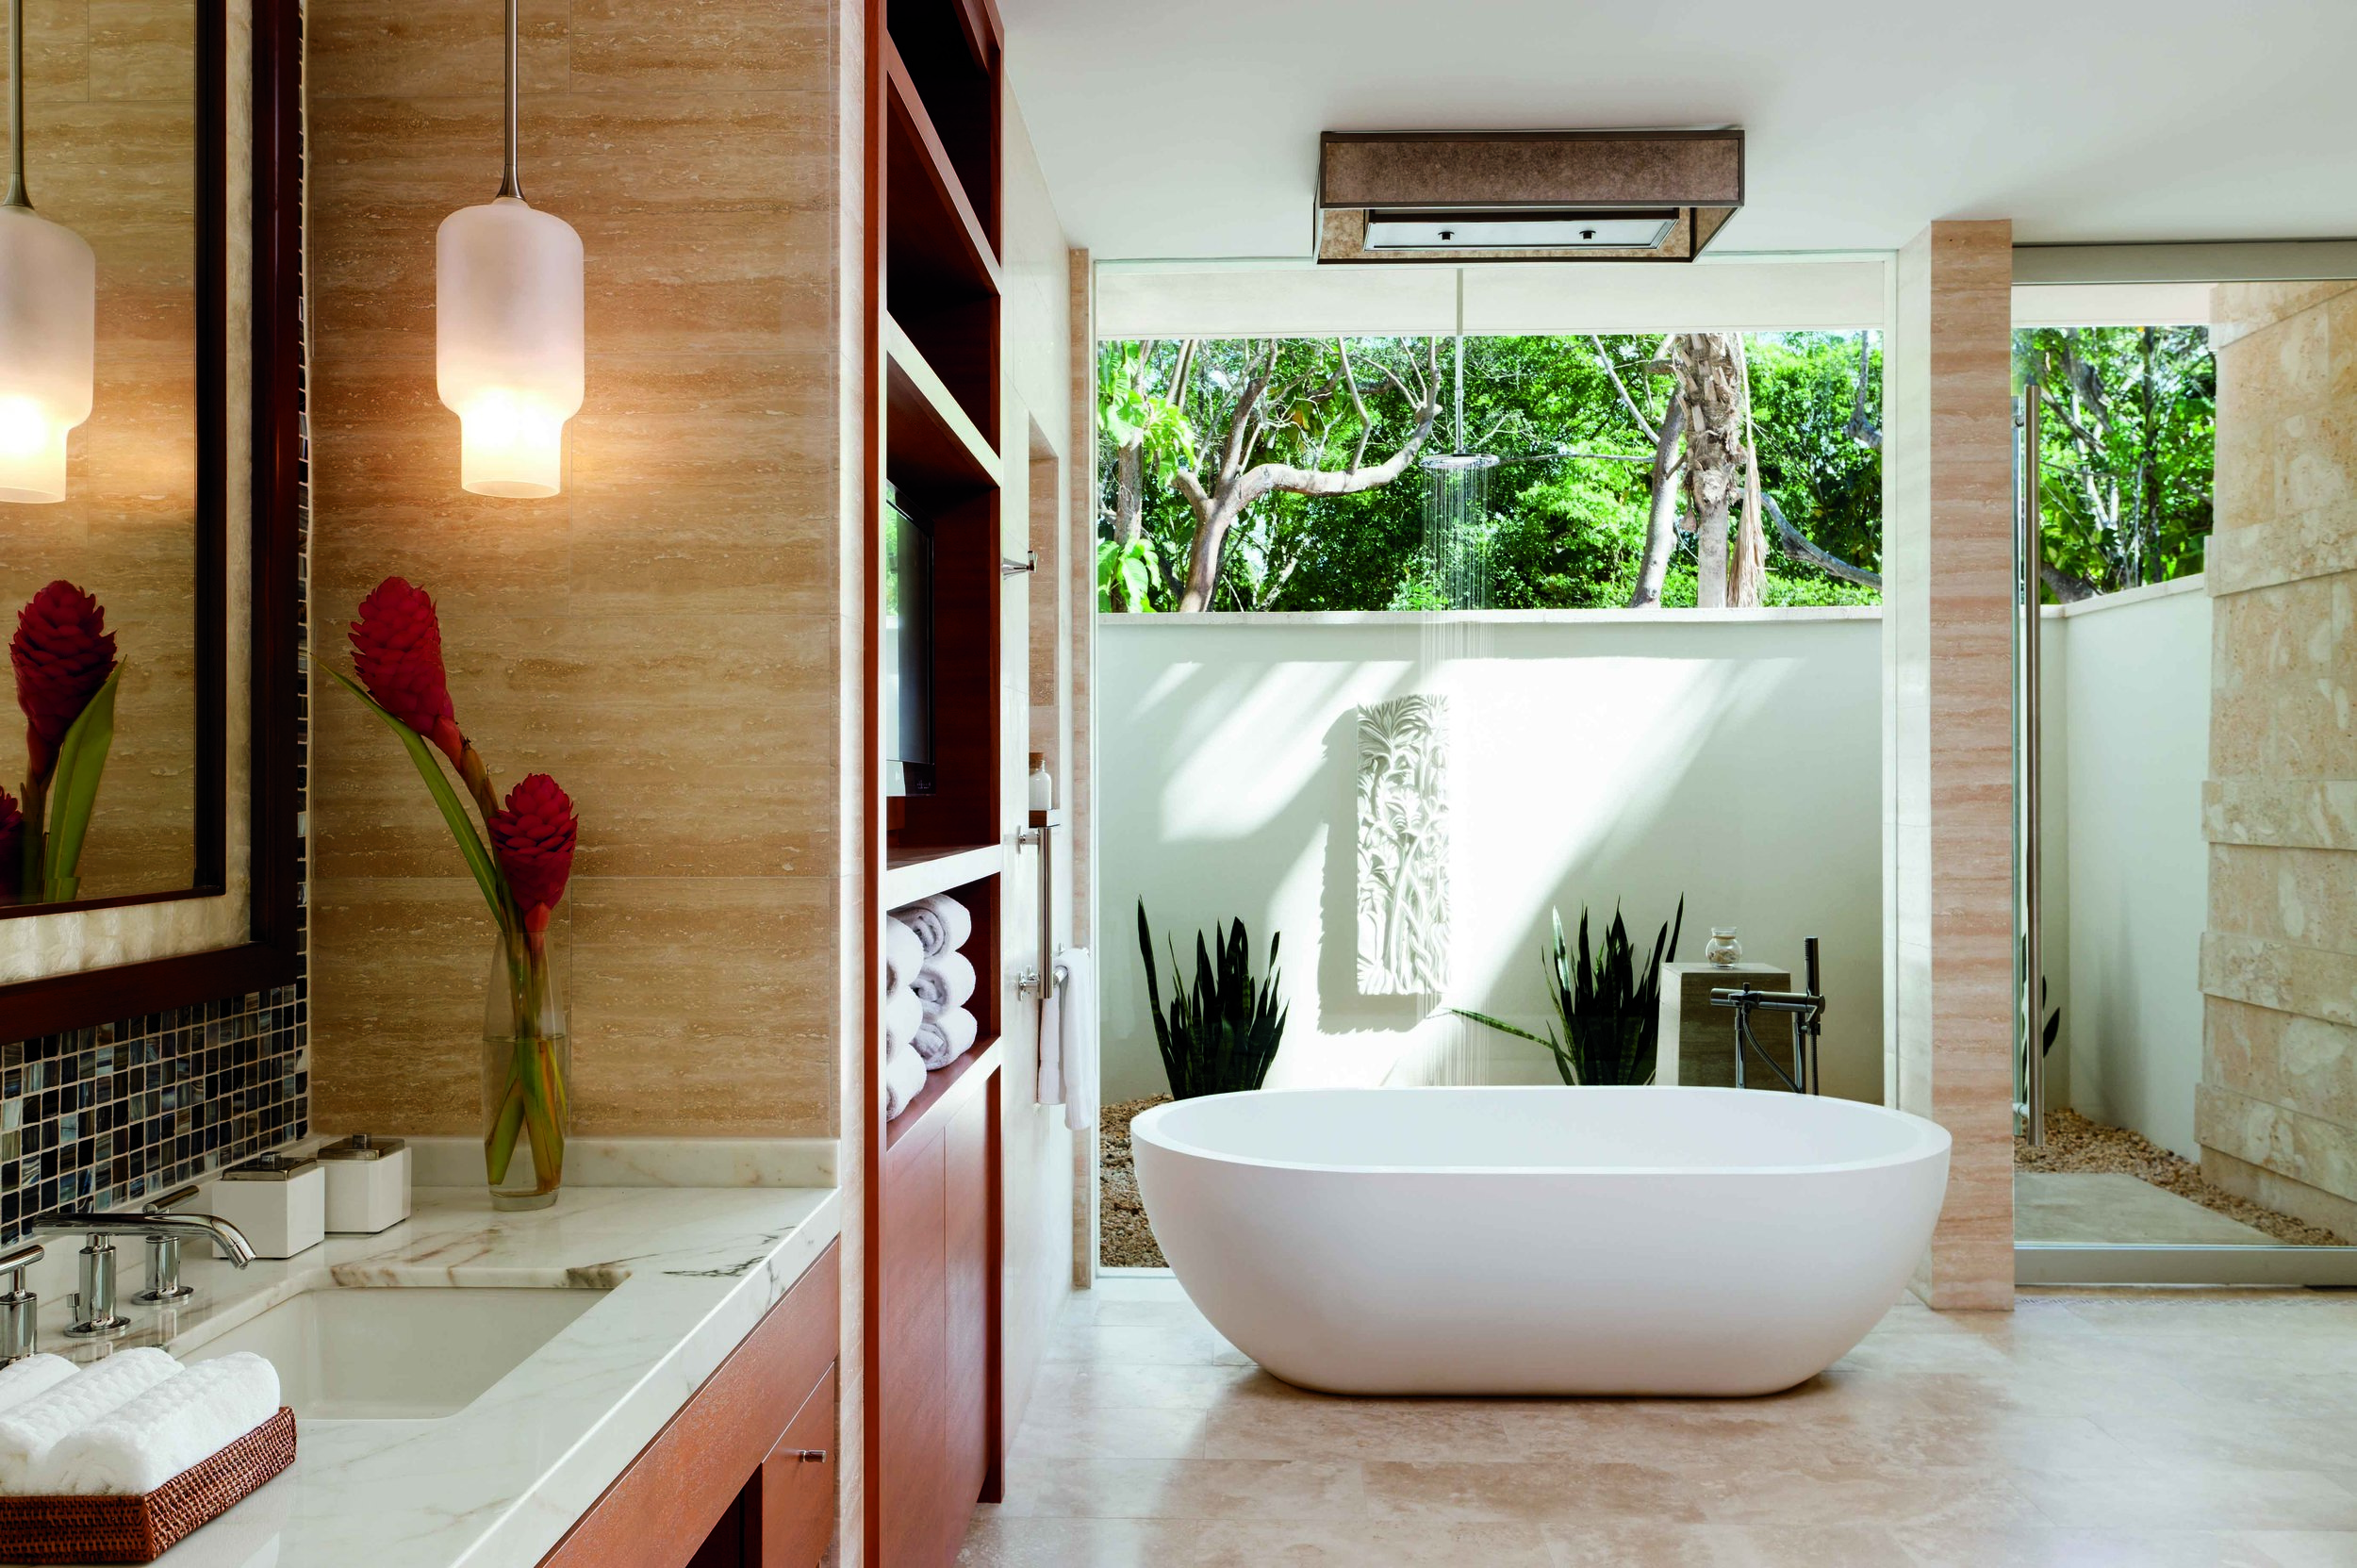 A glass wall divides the indoor bathroom and the private shower garden, which is positioned on a pebble floor.